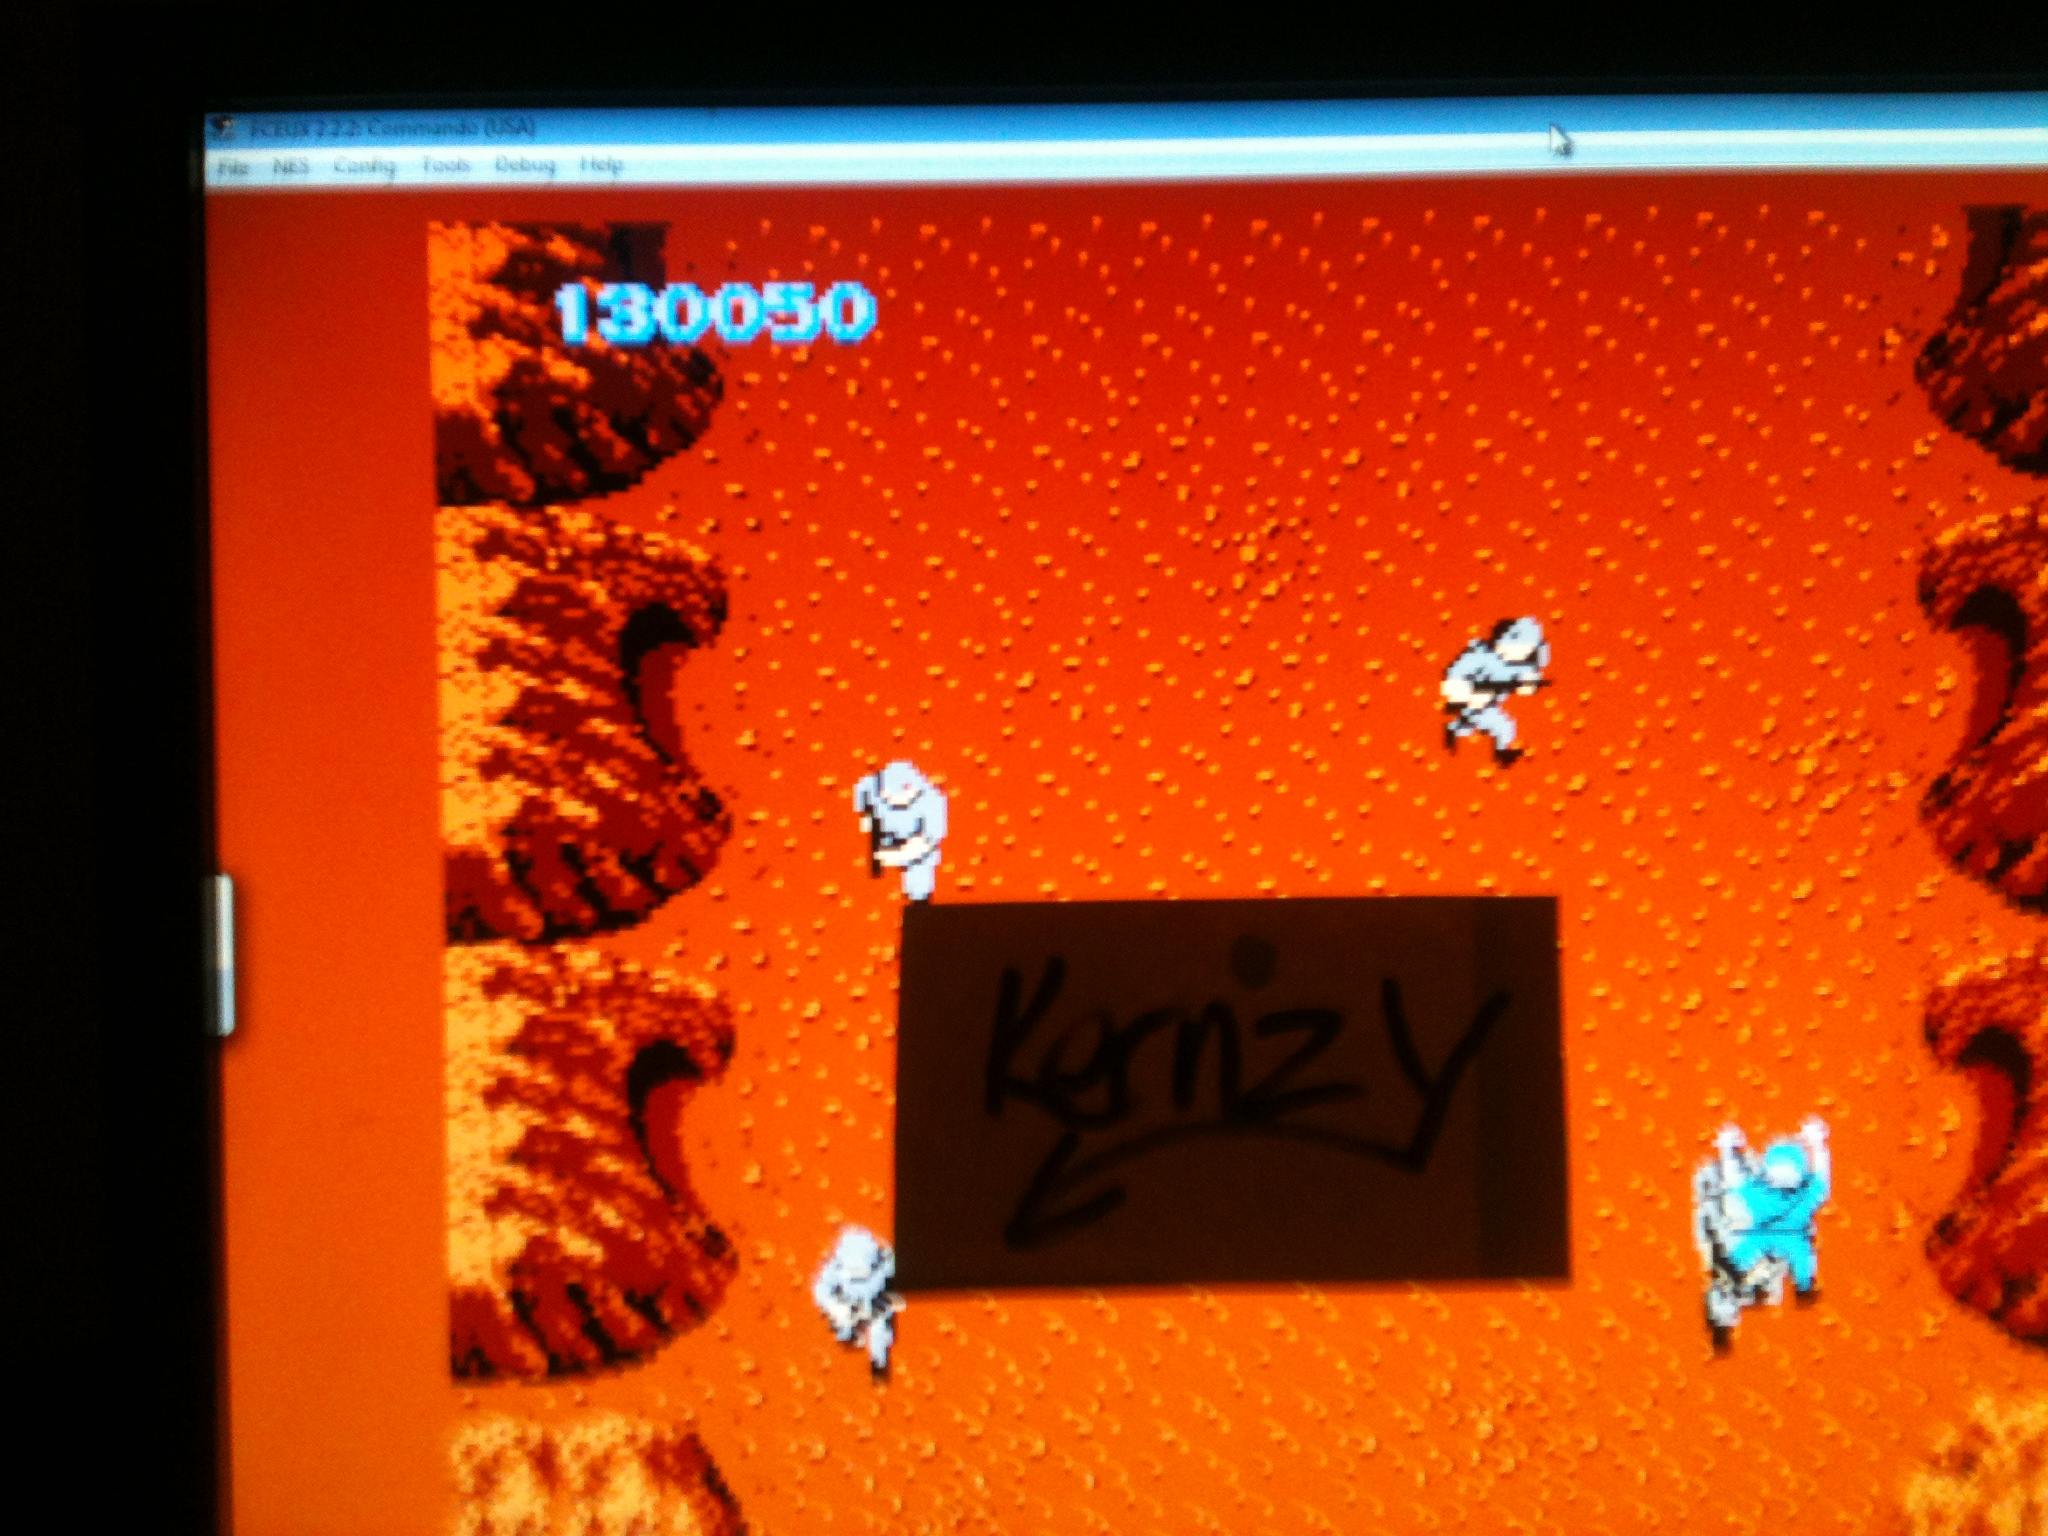 kernzy: Commando (NES/Famicom Emulated) 130,050 points on 2014-11-22 18:36:47